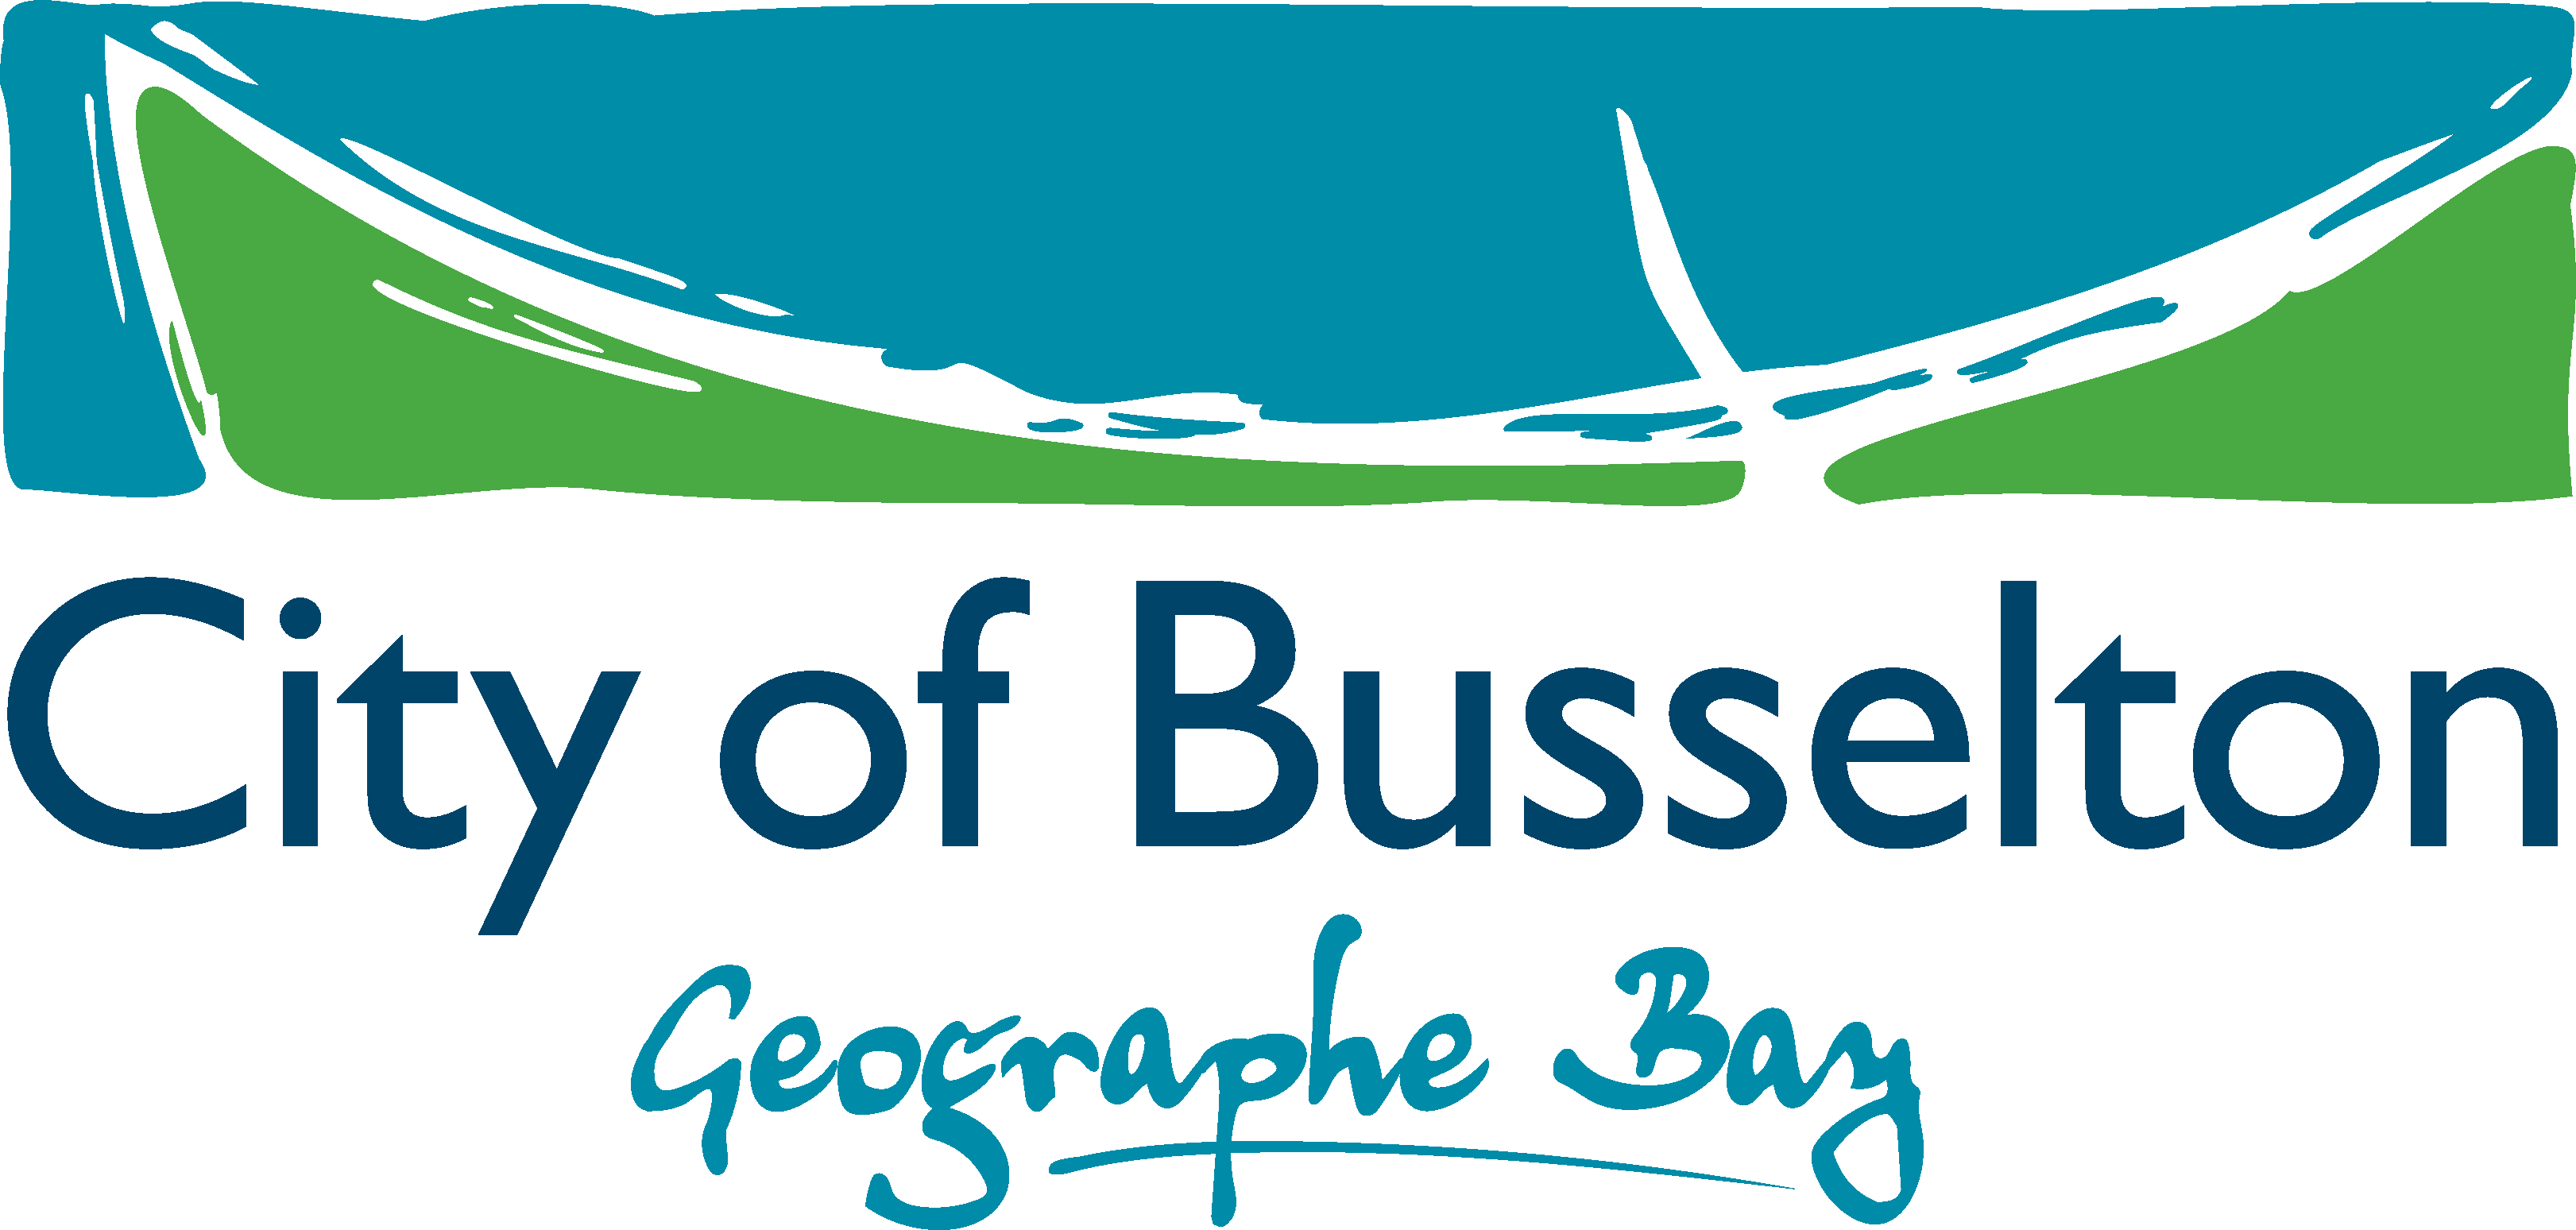 City of Busselton Logo